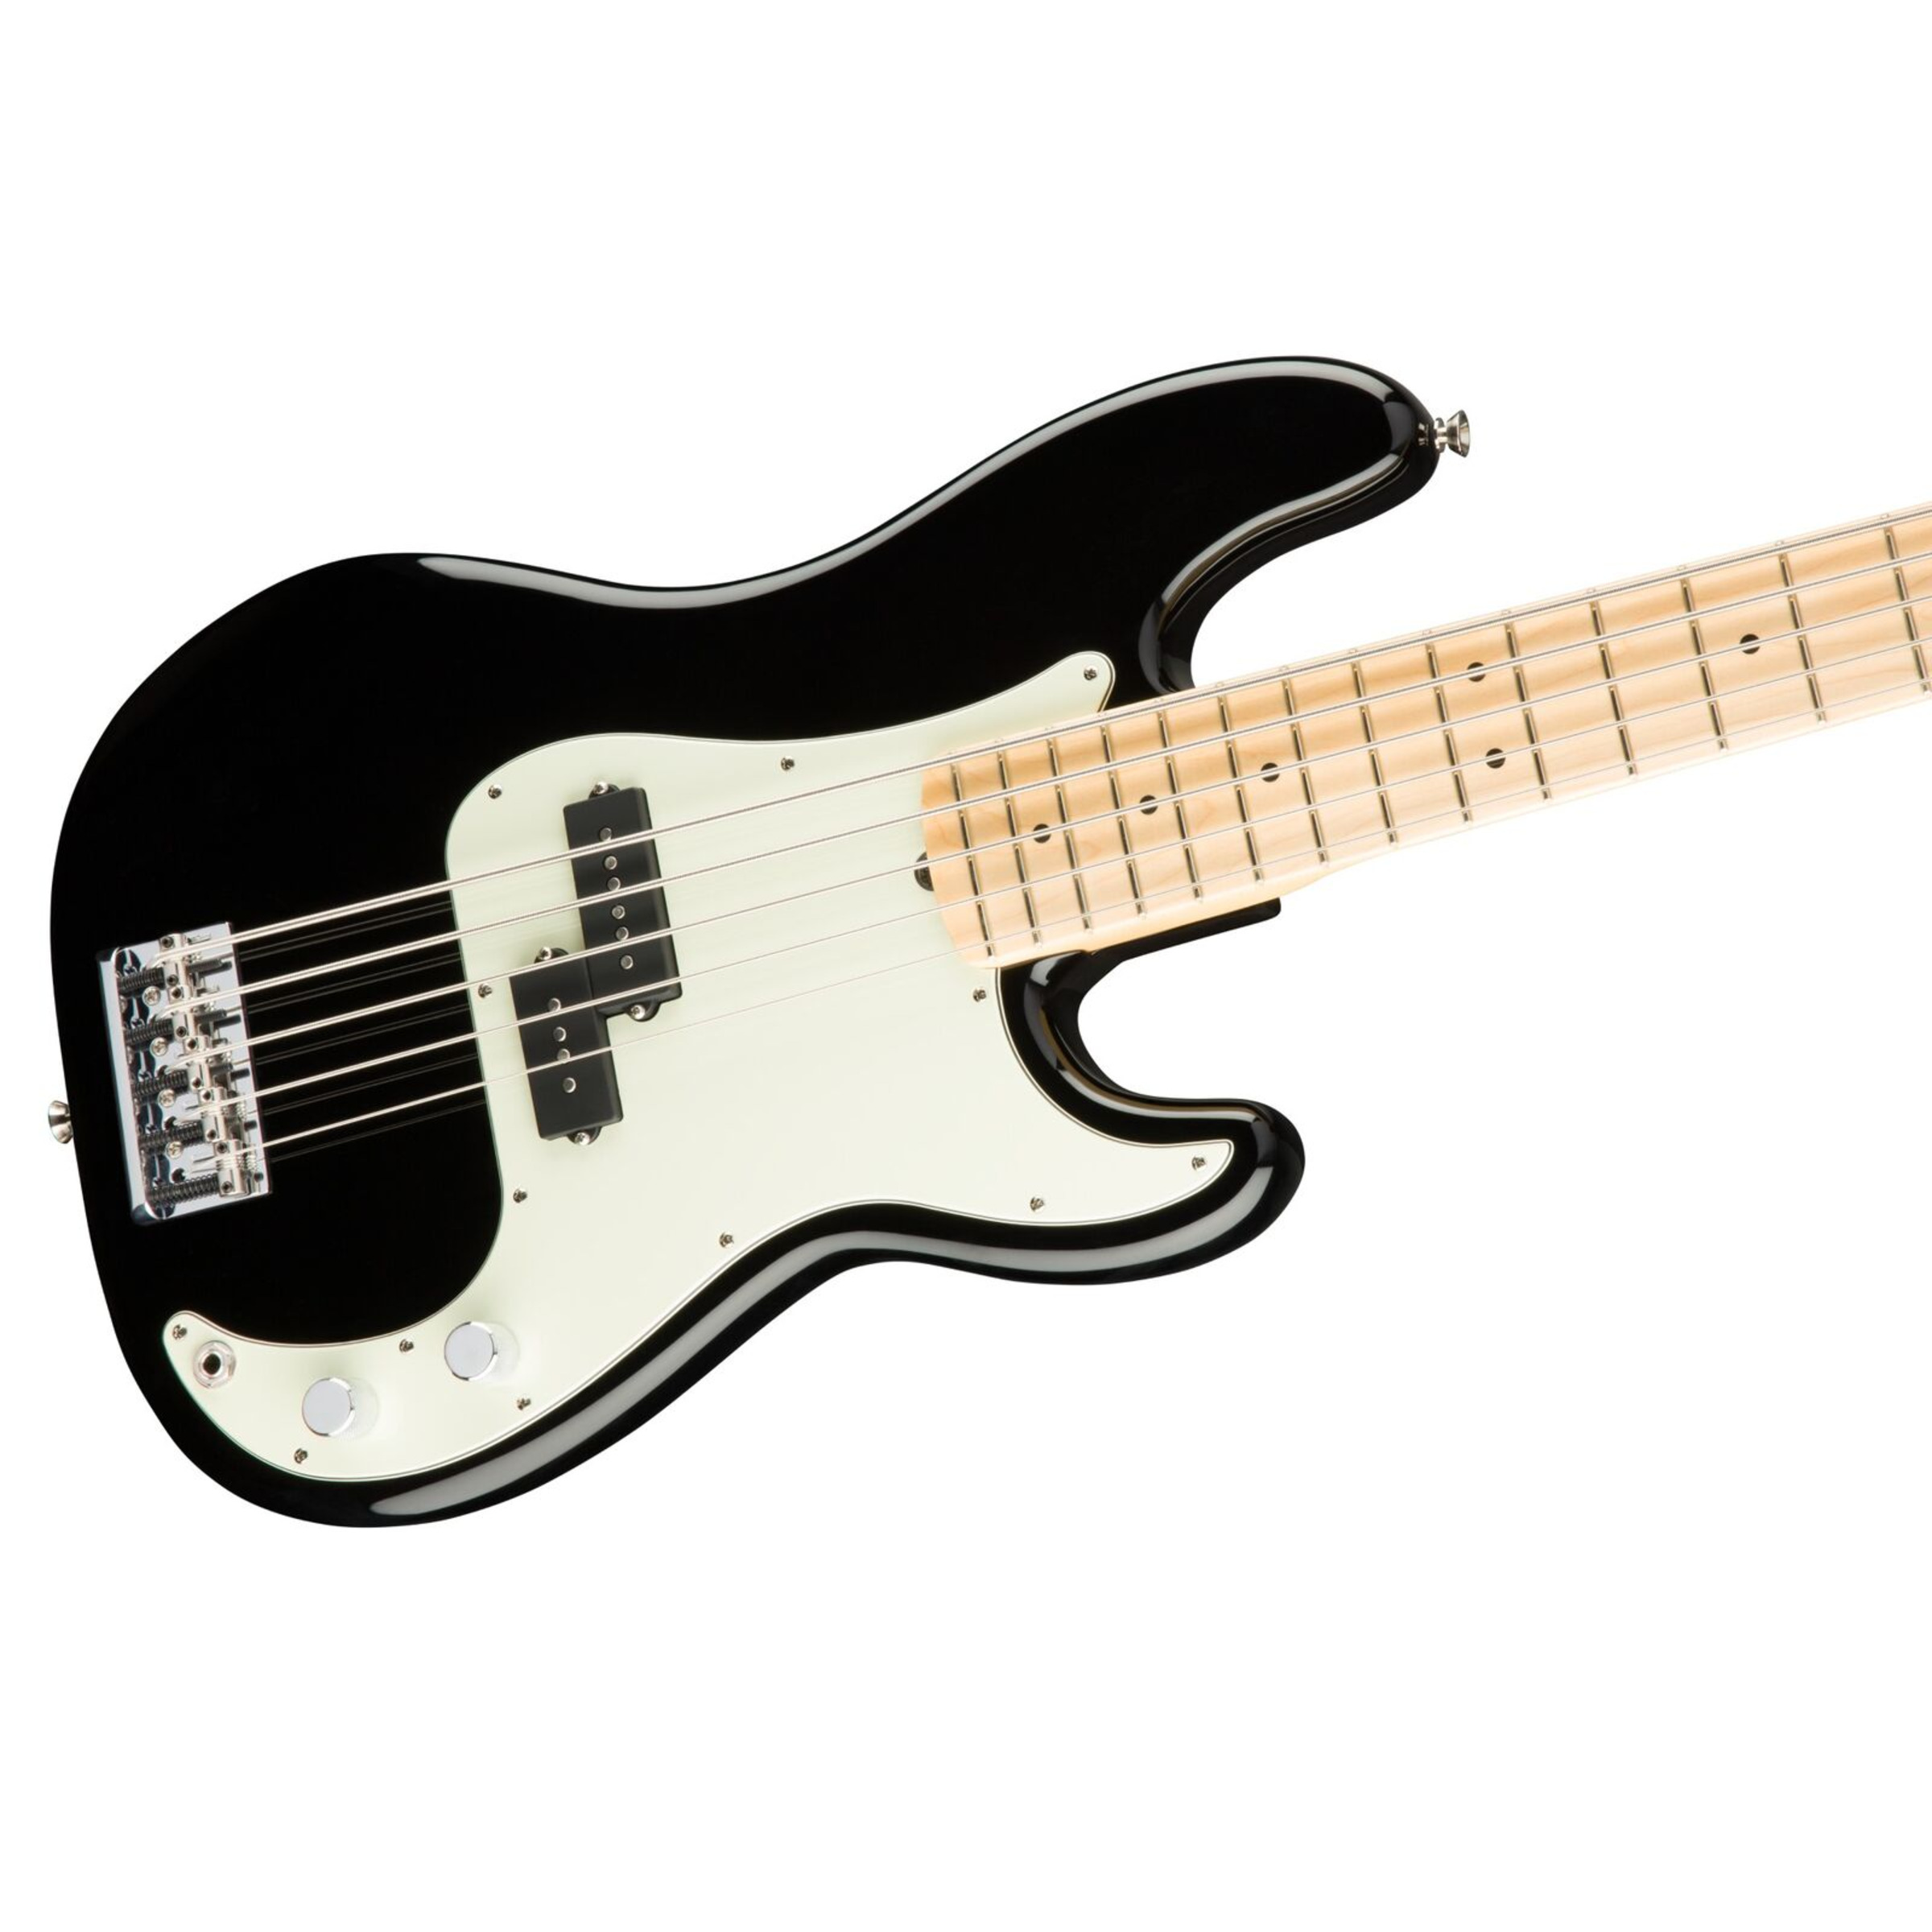 fender american pro p bass 5 string maple fingerboard giggear. Black Bedroom Furniture Sets. Home Design Ideas